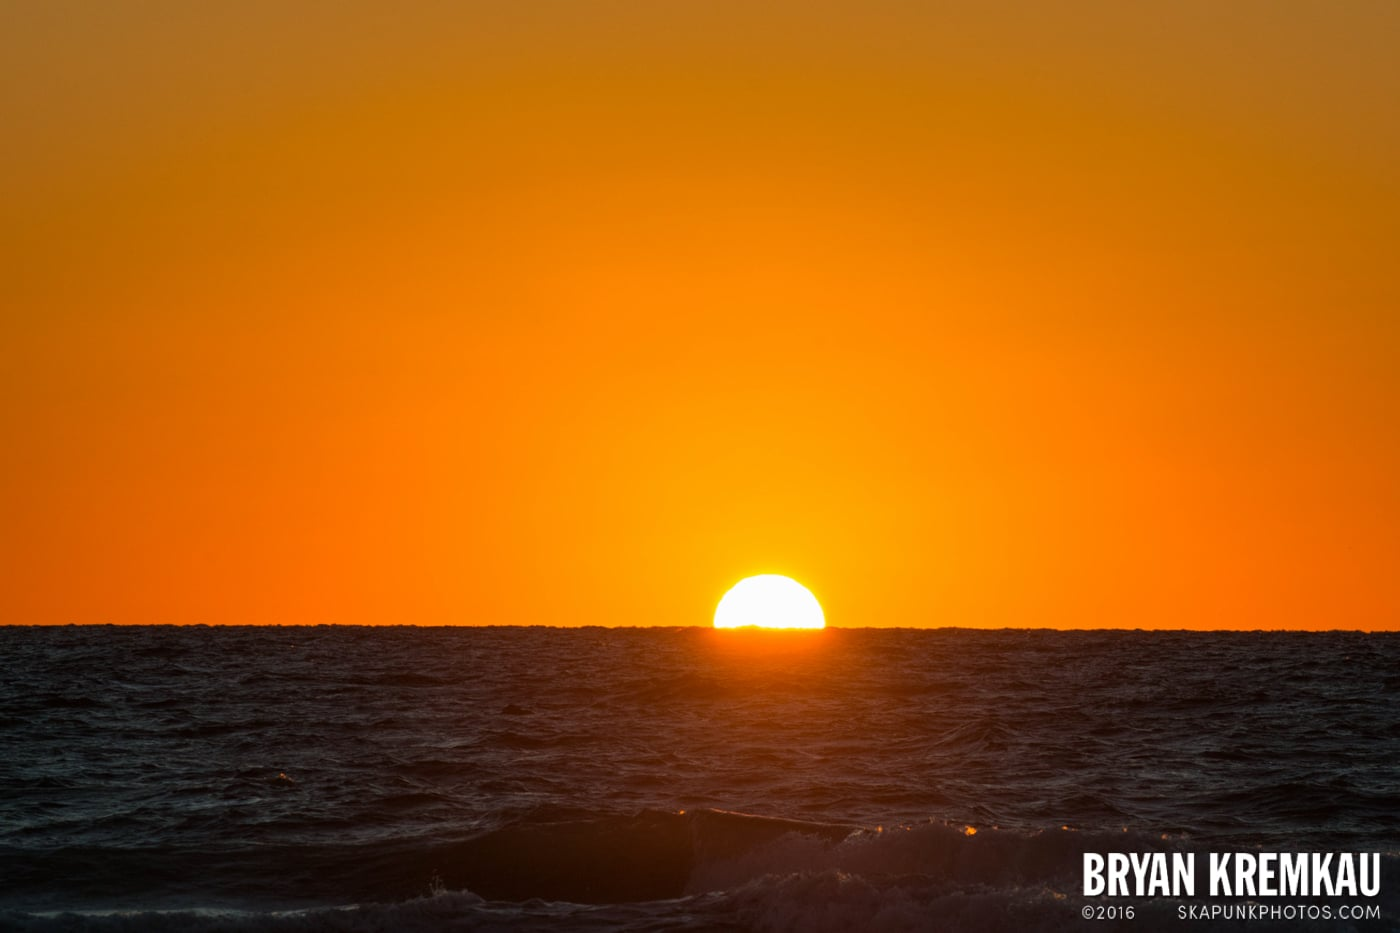 Sunsets, Astrophotography & Birds @ Venice, Florida - 10.25.14 - 11.5.14 (97)